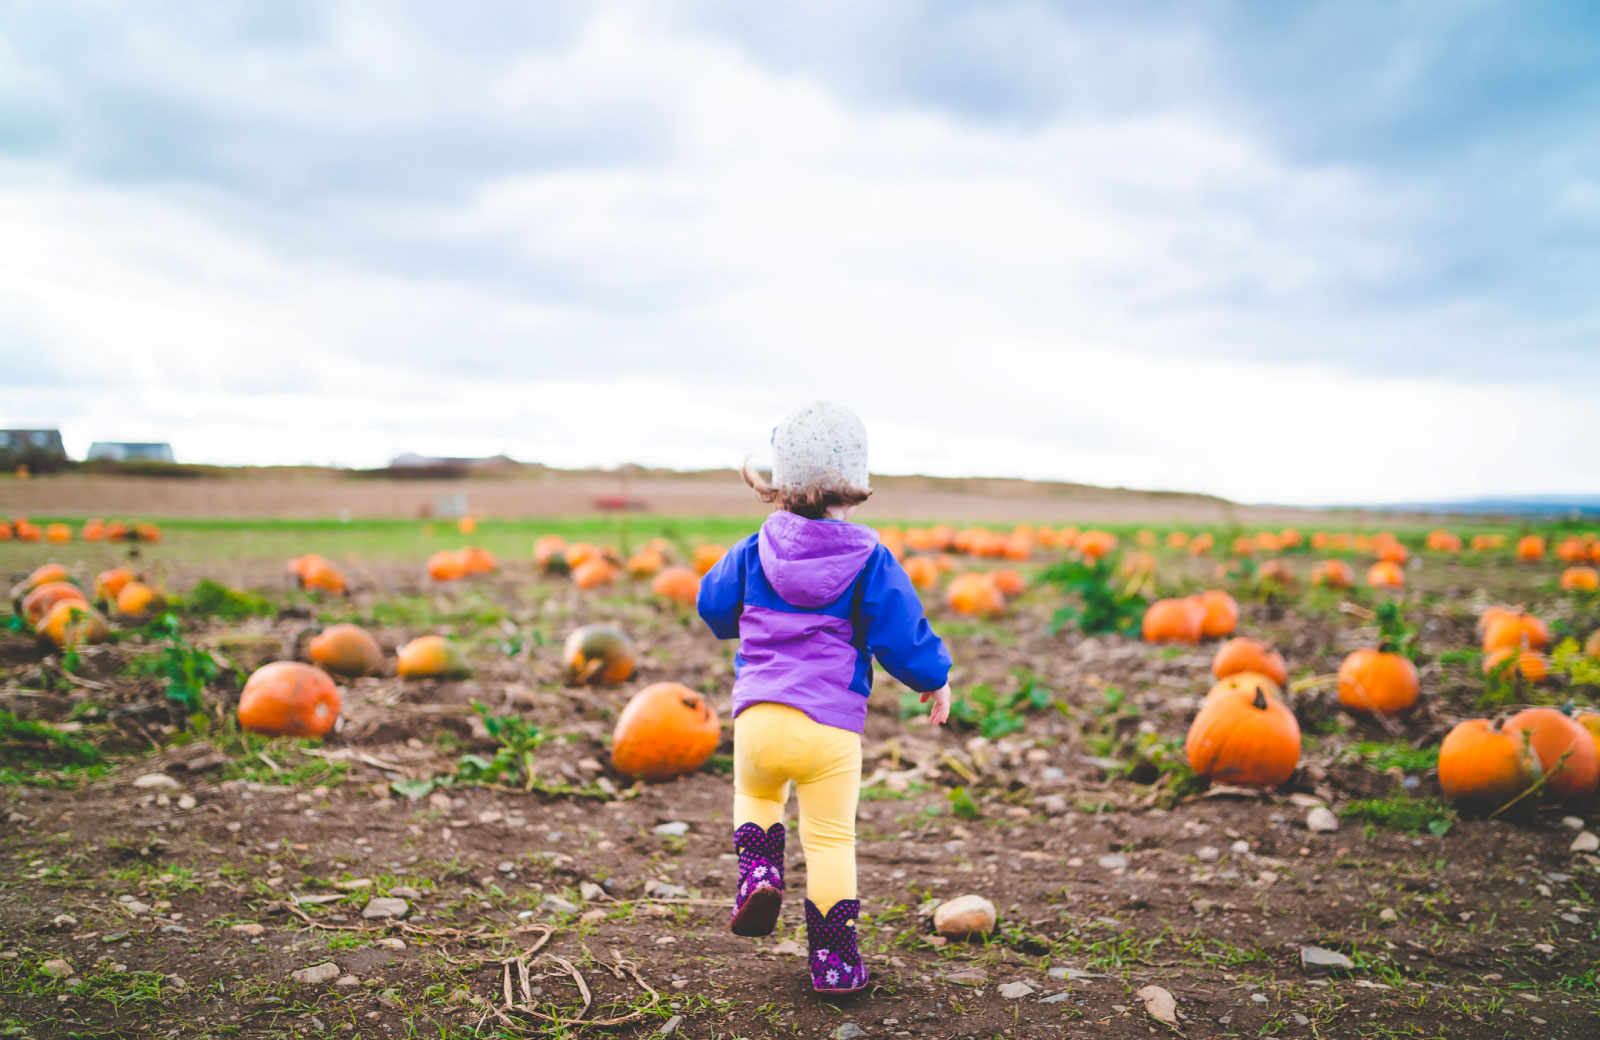 child running in a field of pumpkins